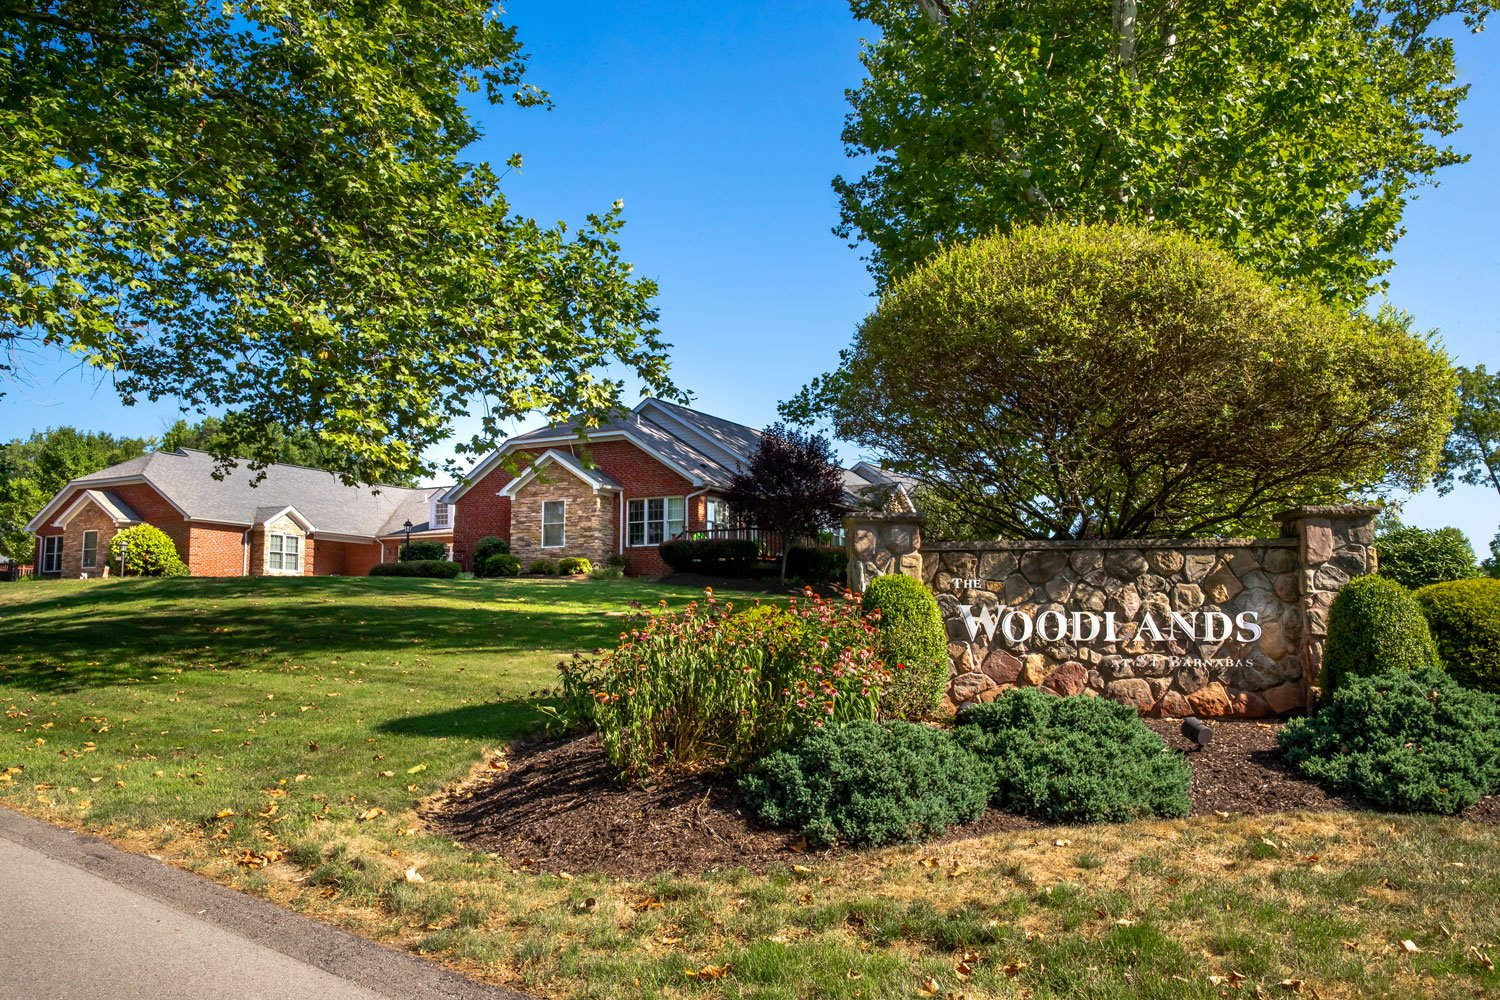 Woodlands-Enrty-with-House-2-web